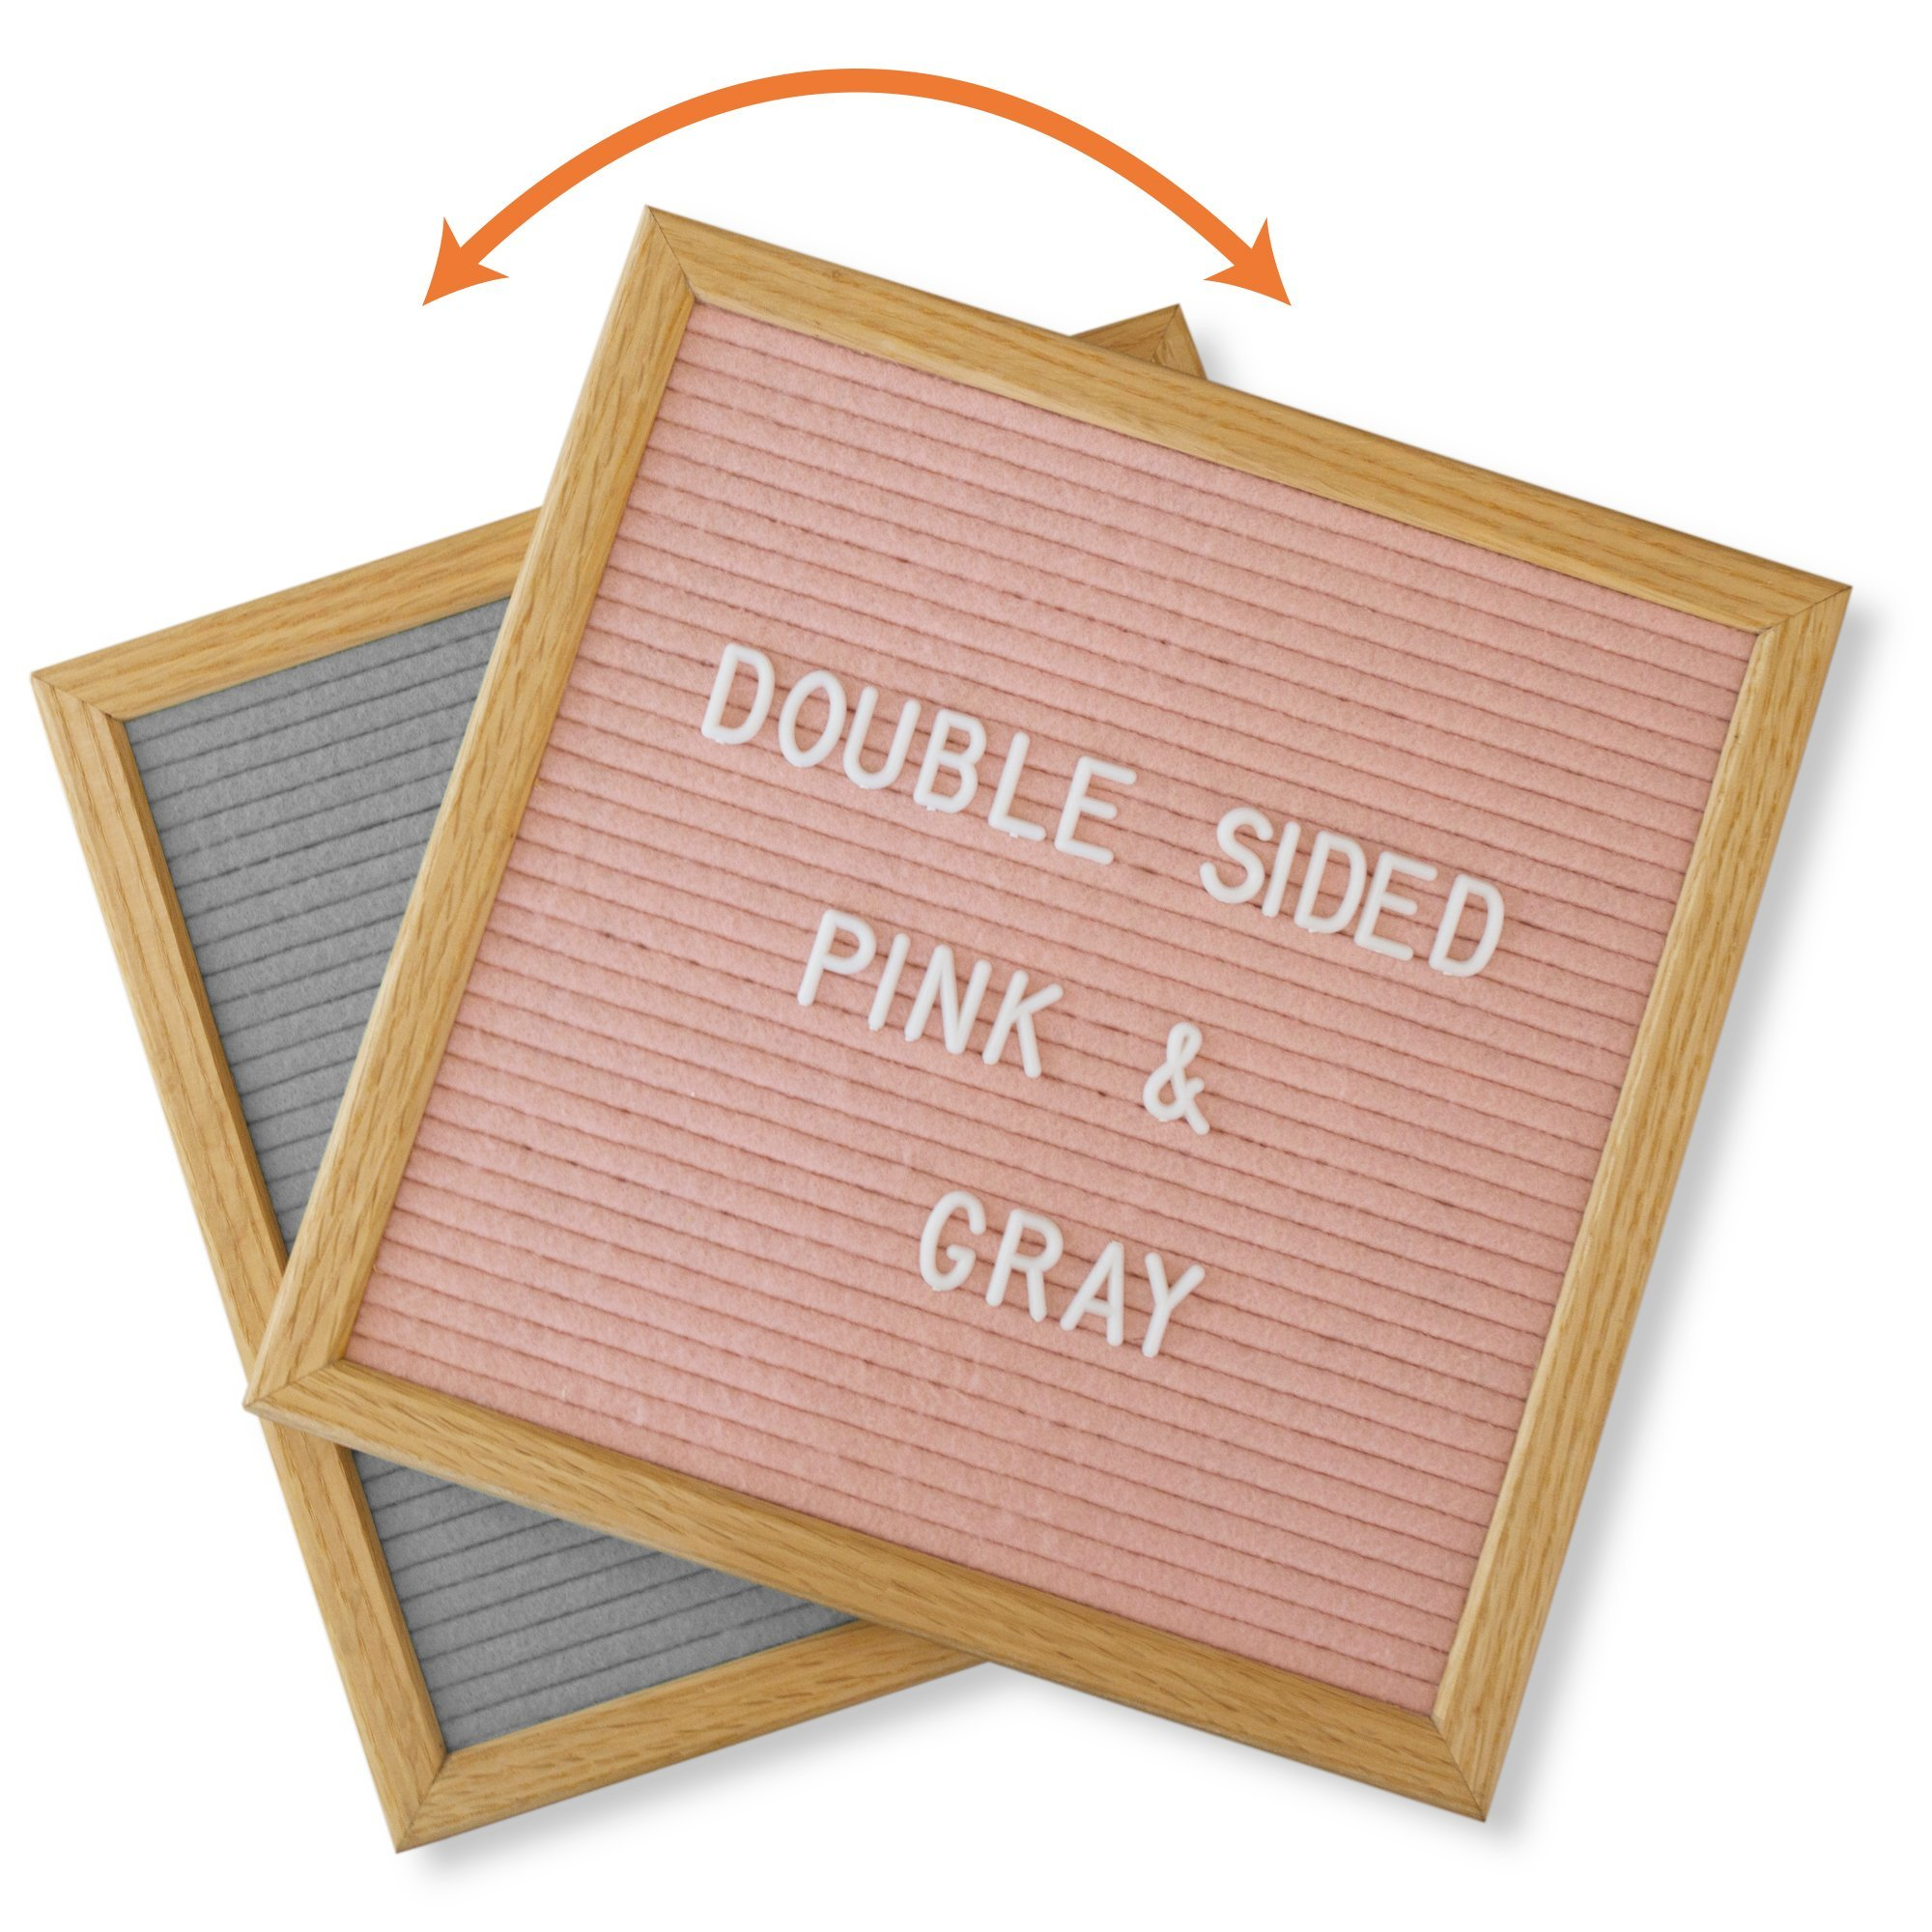 Felt Letter Board Pink and Gray Double Sided with Stand and 600 Letters. Pregnancy Baby Announcement Board, 10x10 American Oak Wood Message Board Sign, Boy Girl Gender Birth Reveal Idea